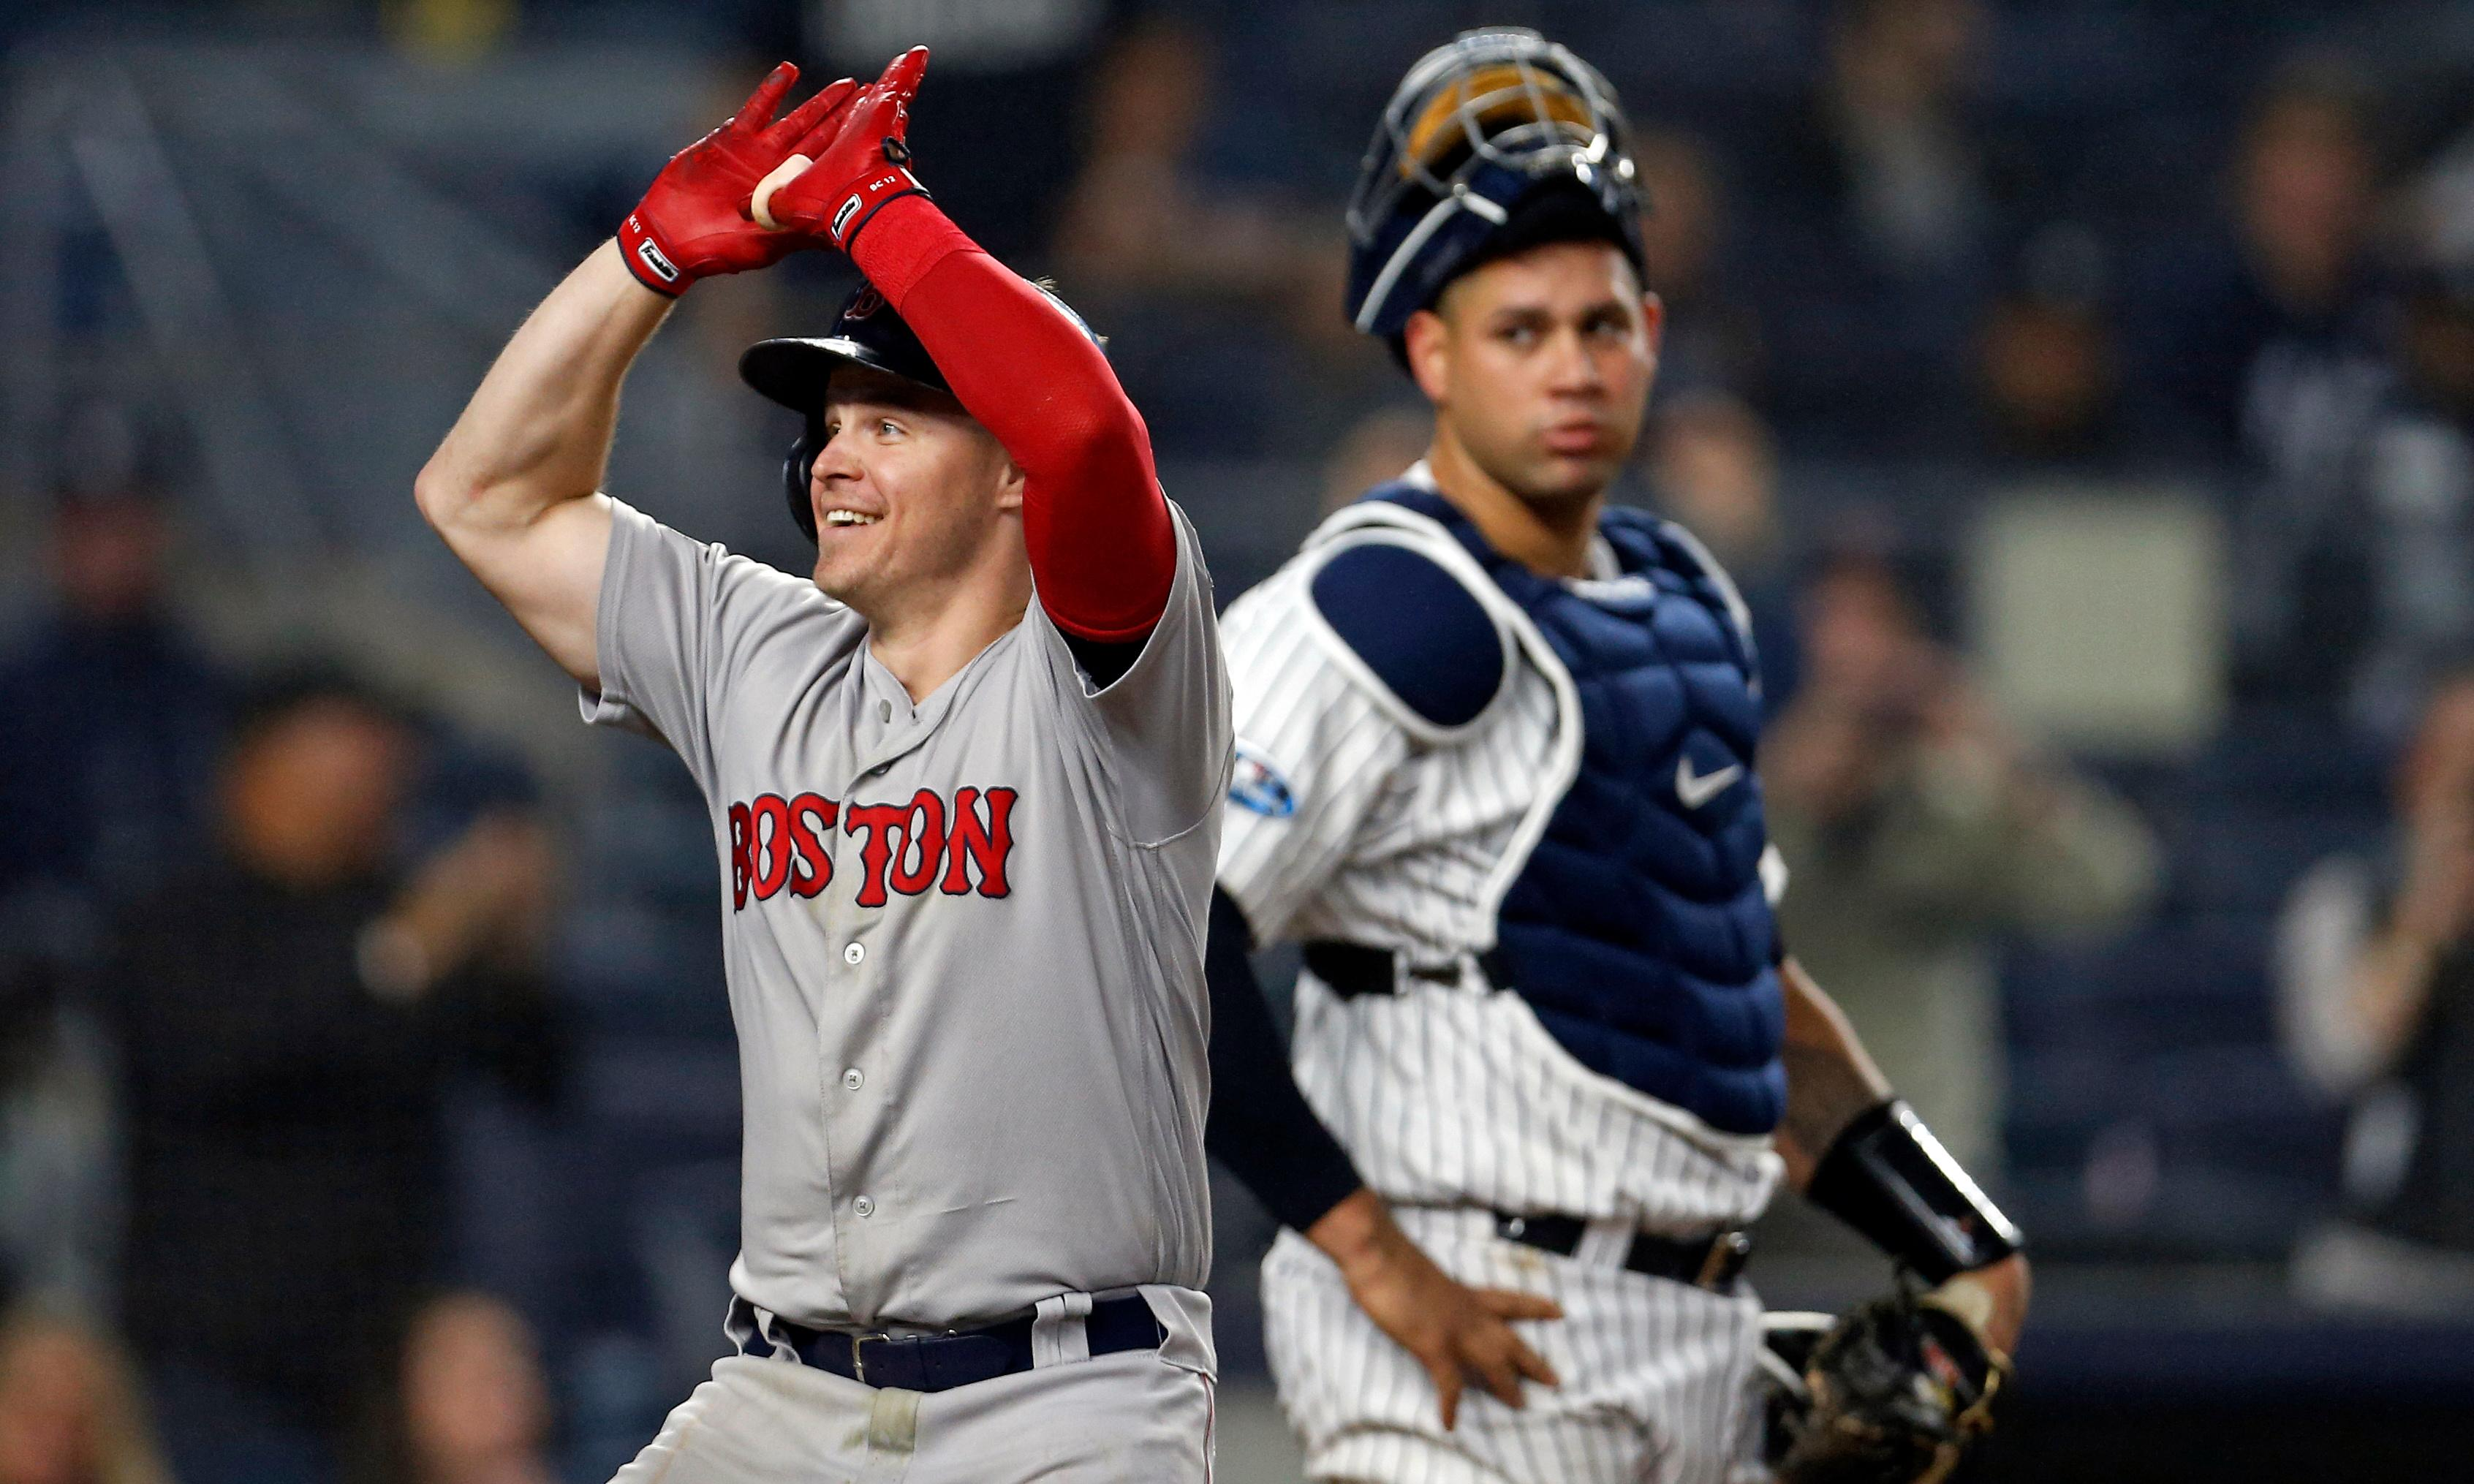 Red Sox inflict record playoff defeat on shellshocked Yankees